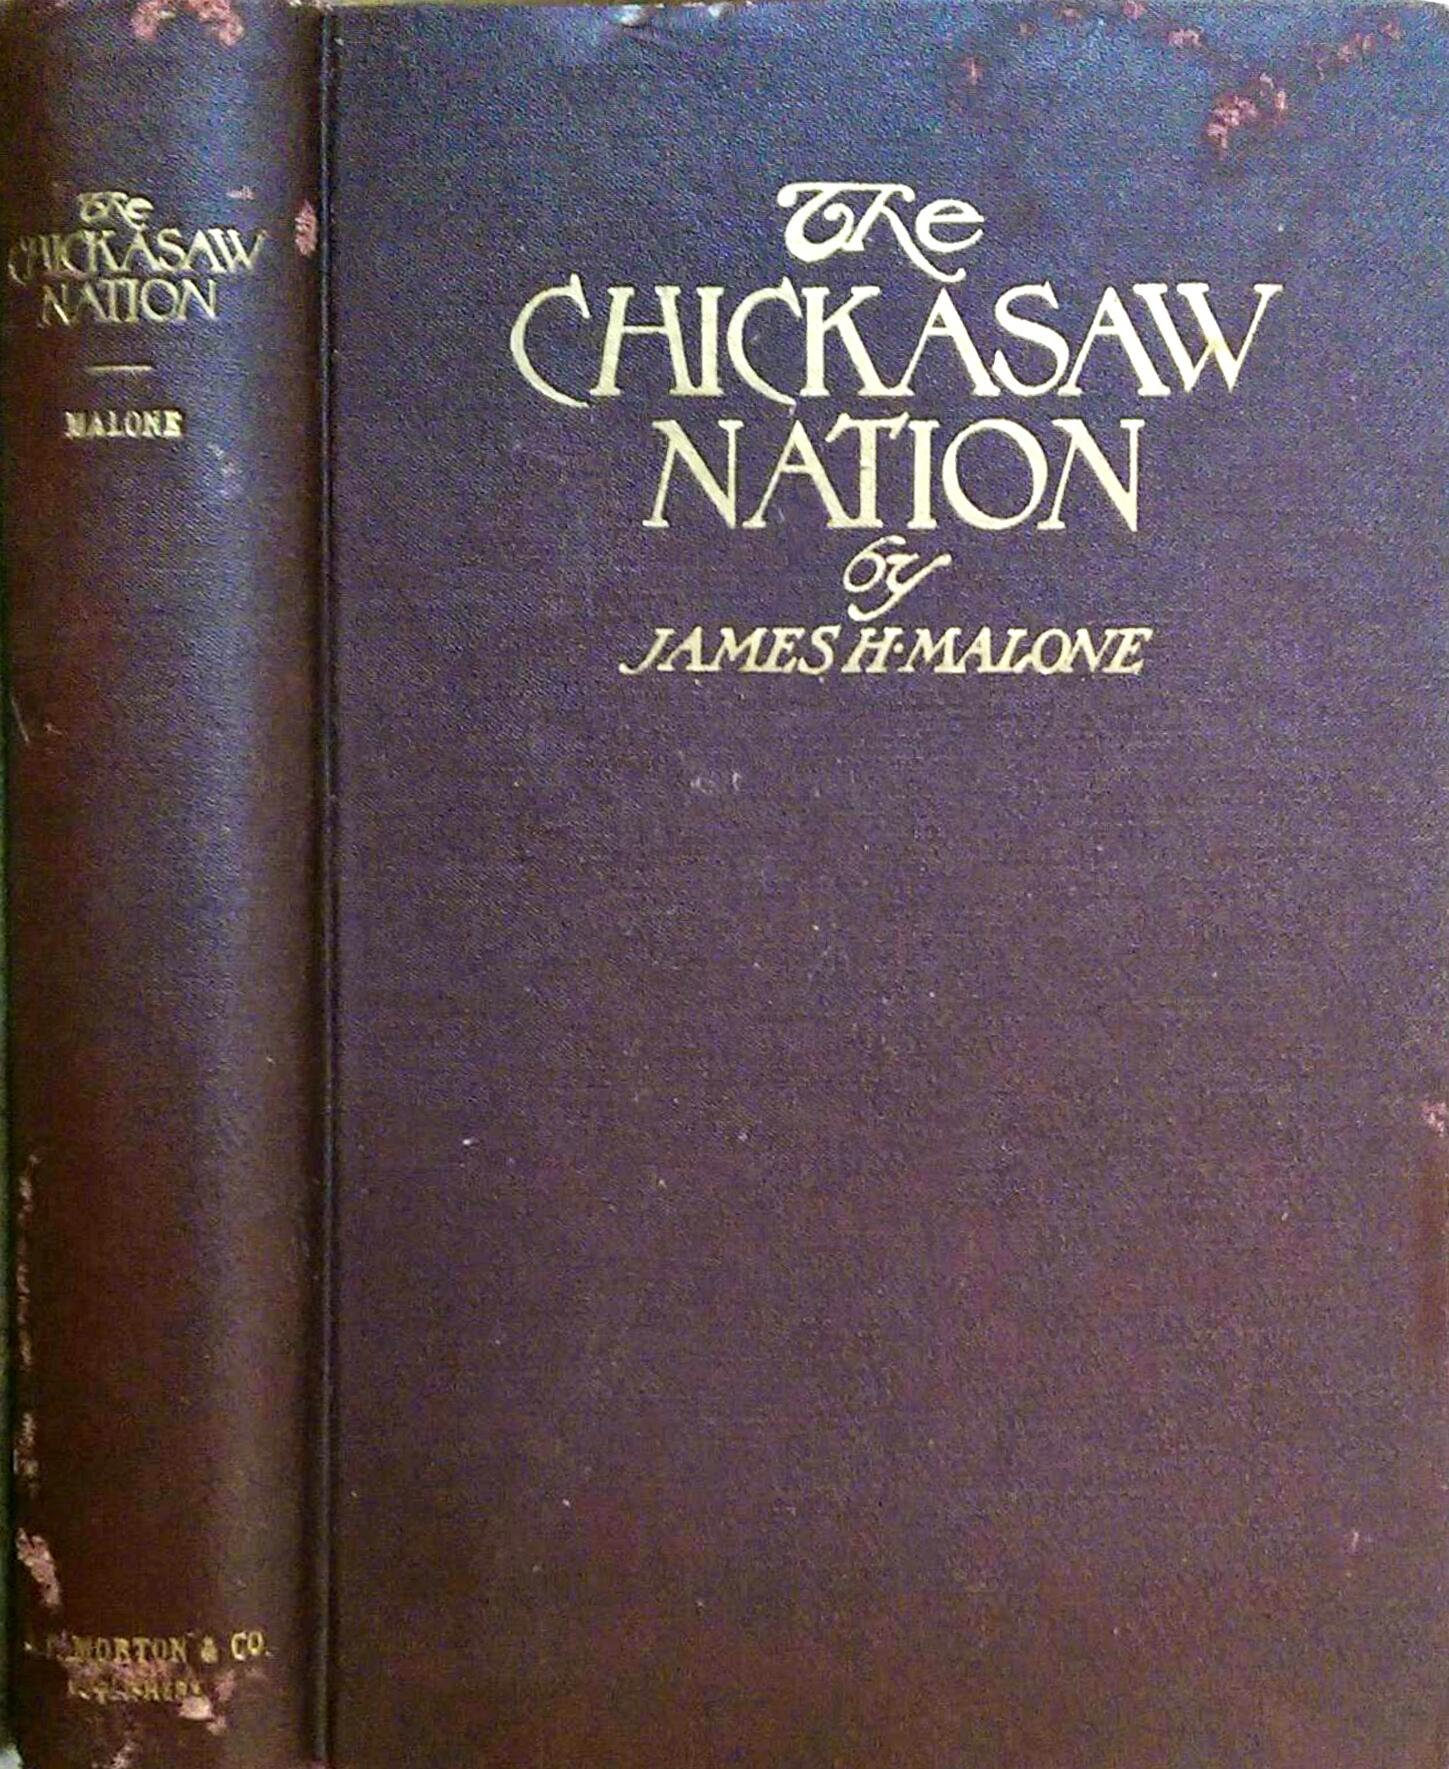 The Chickasaw nation : a short sketch of a noble people (1922)